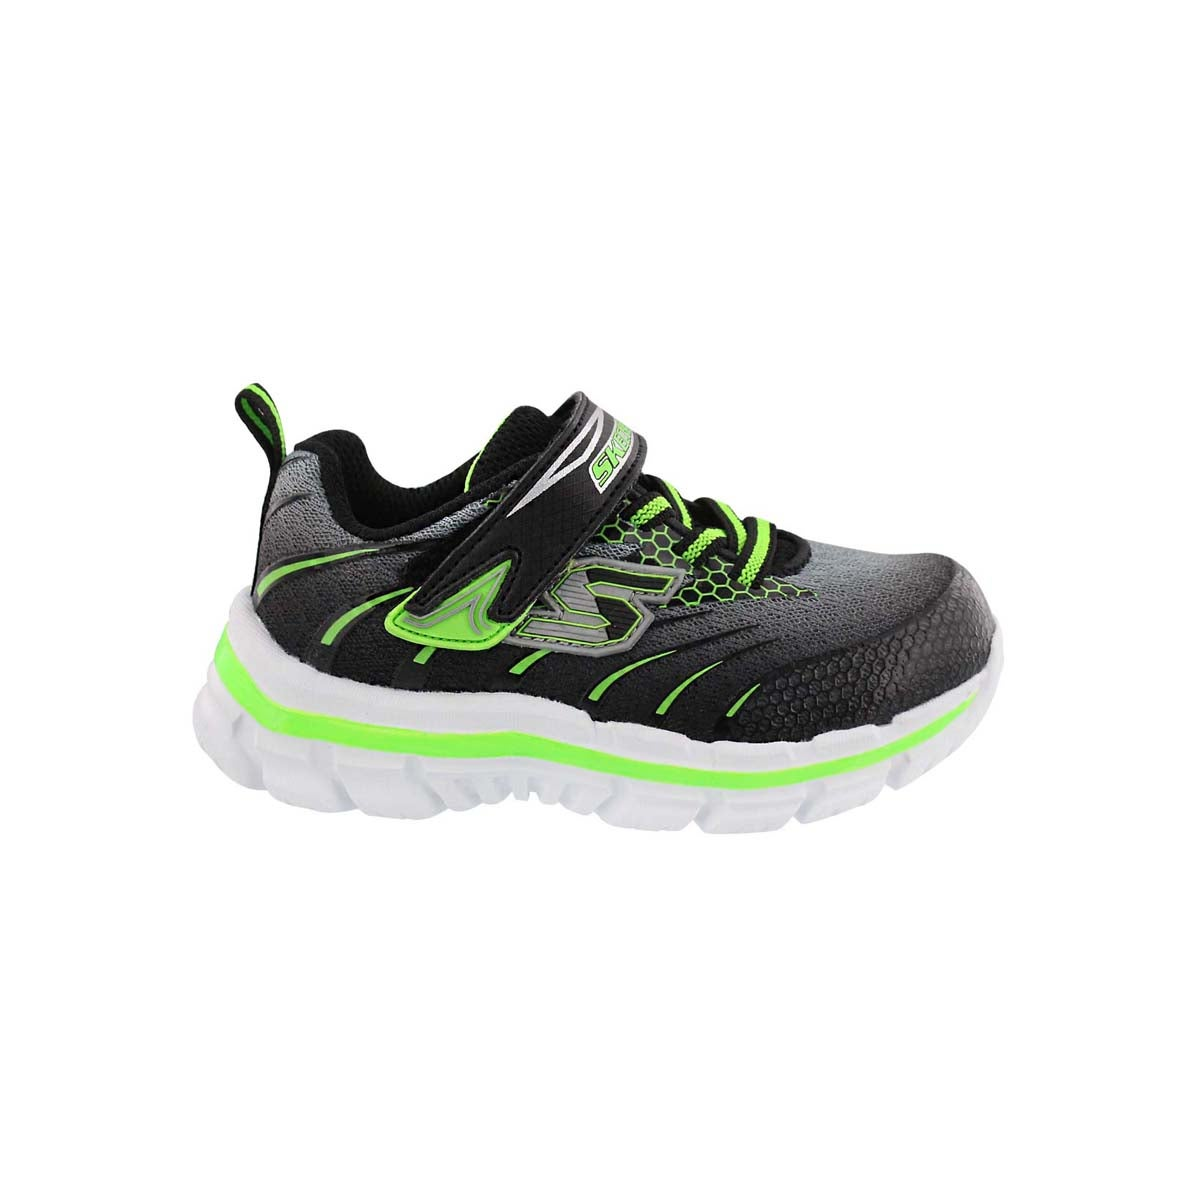 Infs-b Nitrate Pulsar blk/lime sneaker